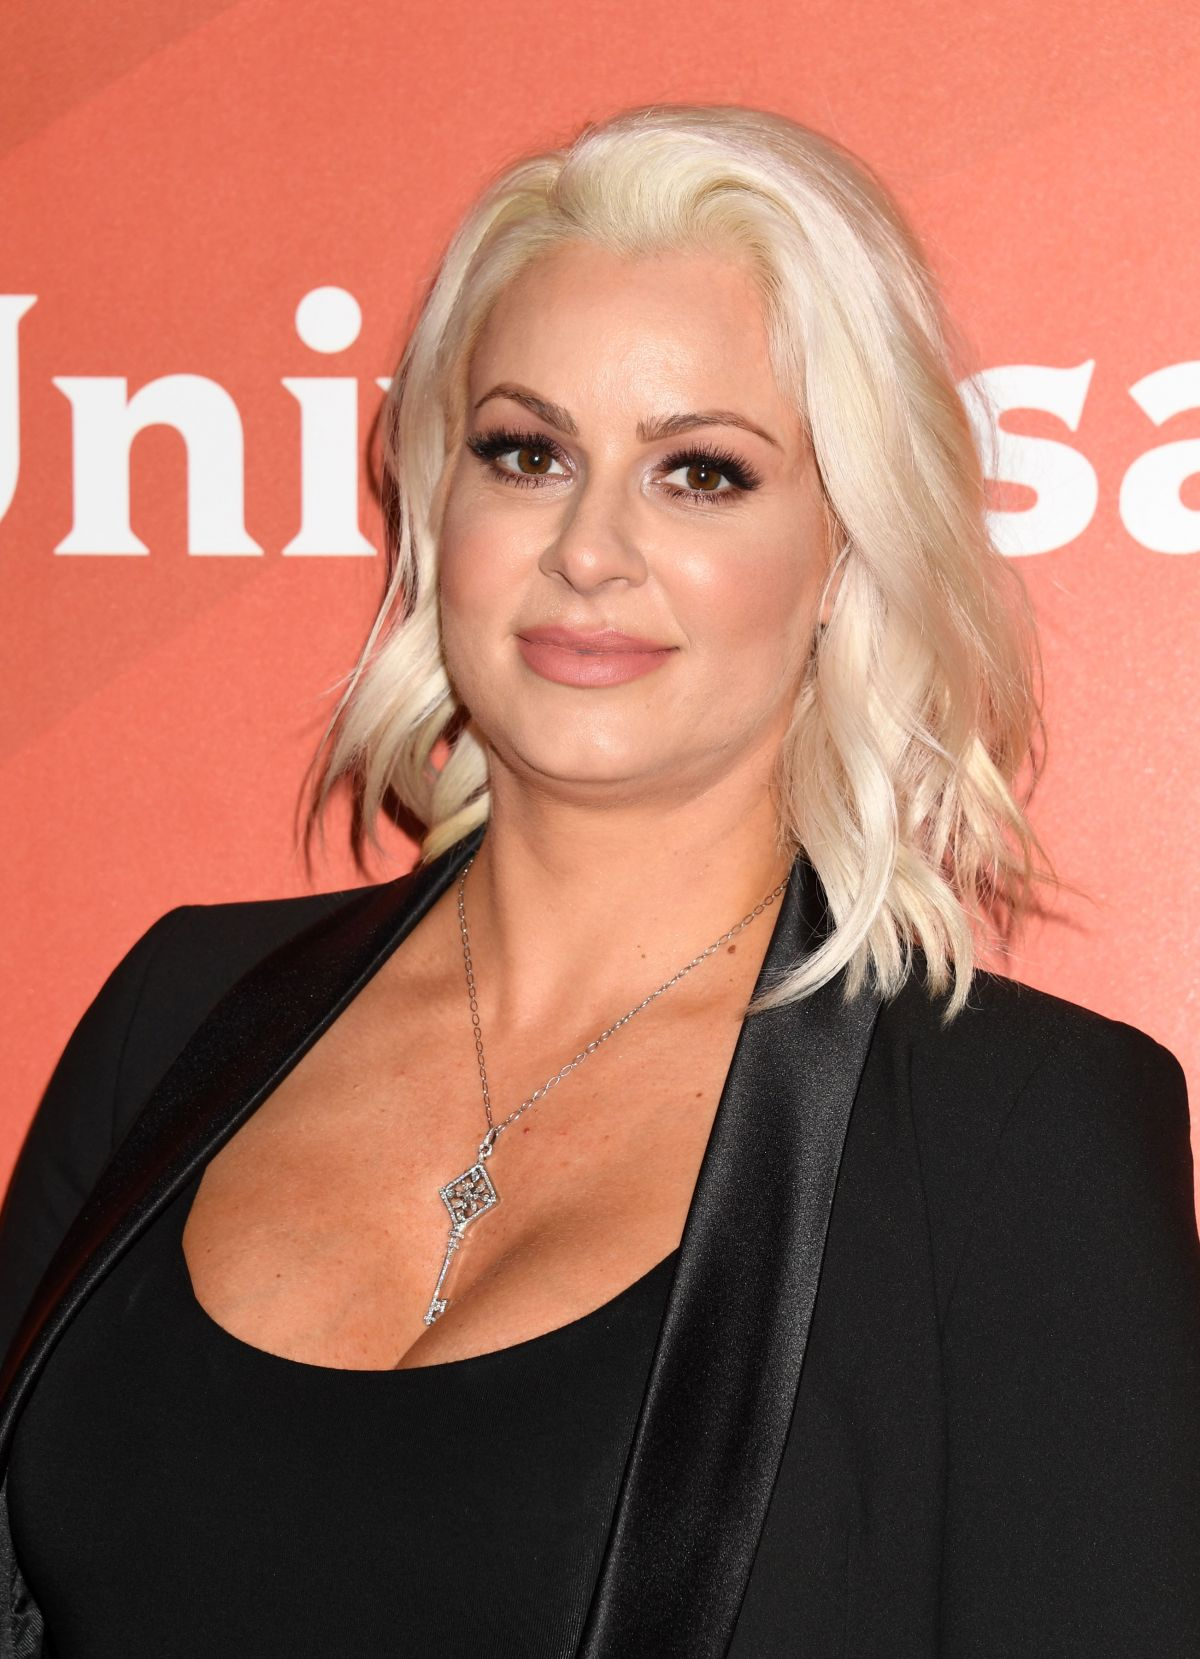 Maryse Mizanin nudes (41 foto and video), Pussy, Sideboobs, Twitter, braless 2018